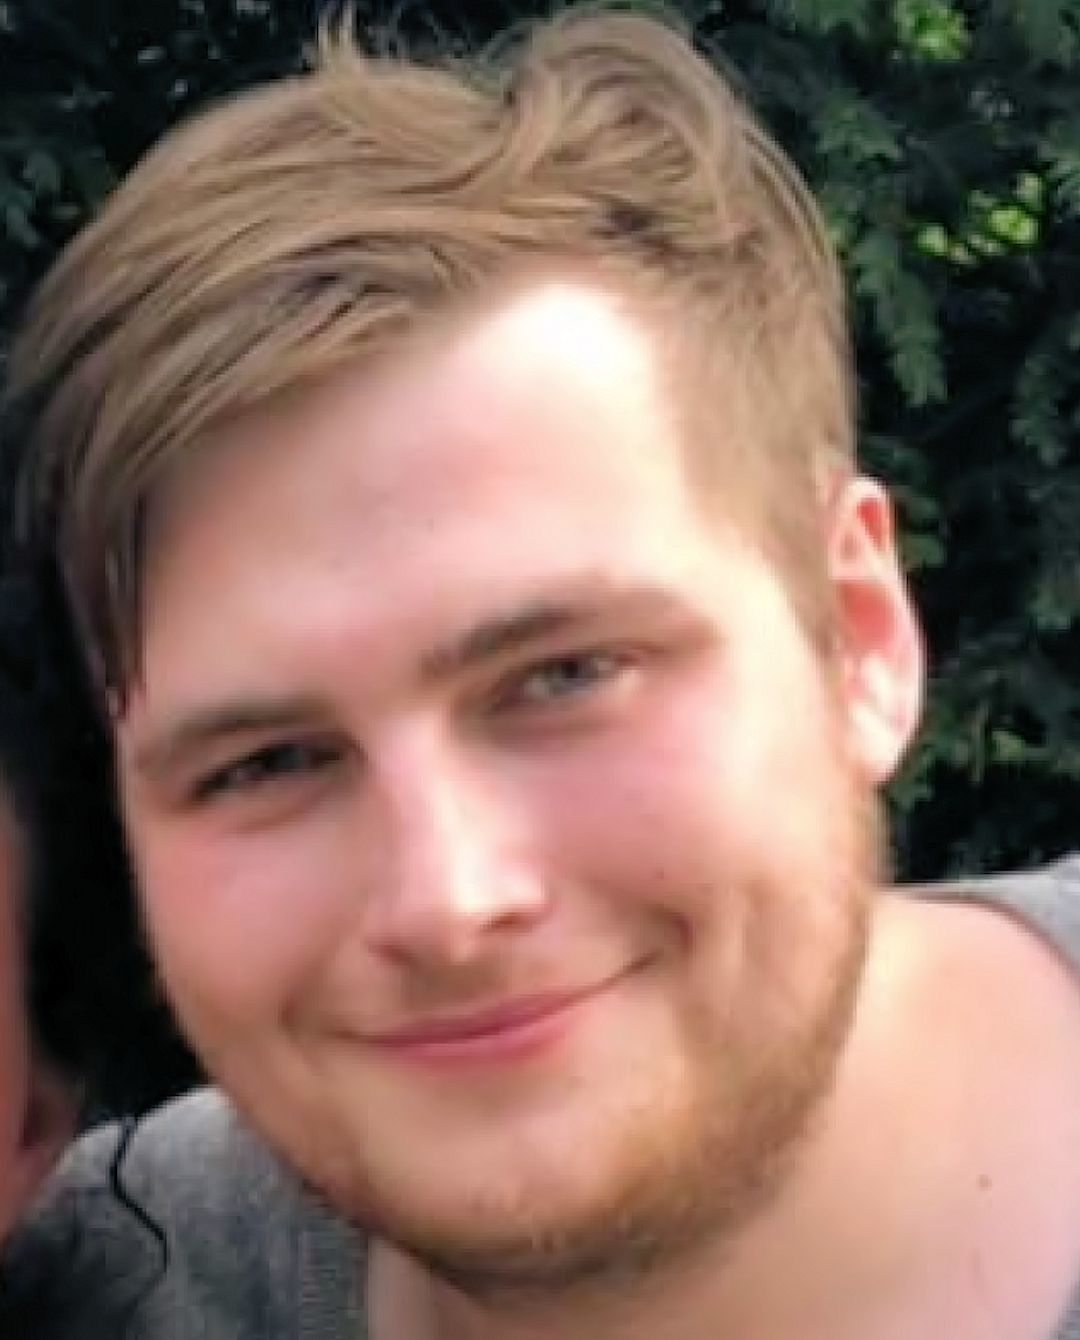 Tom Jennings was last seen in Boundary Road, Portslade, at about 9am on Thursday